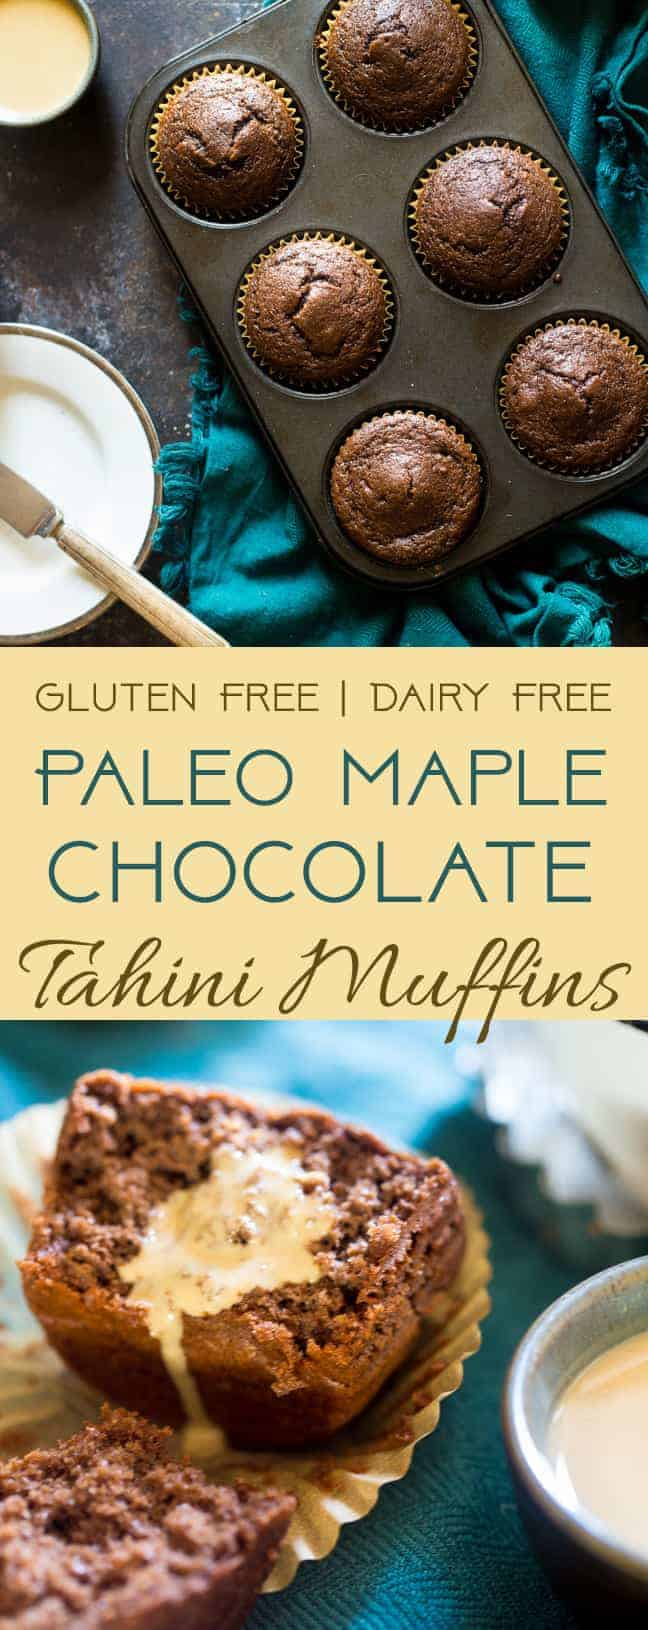 Paleo Maple Tahini Chocolate Muffins - These gluten free chocolate muffins are sweetened with maple syrup and have a hint of tahini. They're a healthy, easy breakfast for busy mornings that are only 170 calories! | #Foodfaithfitness | #Paleo #healthy #glutenfree #muffins #coconutflour